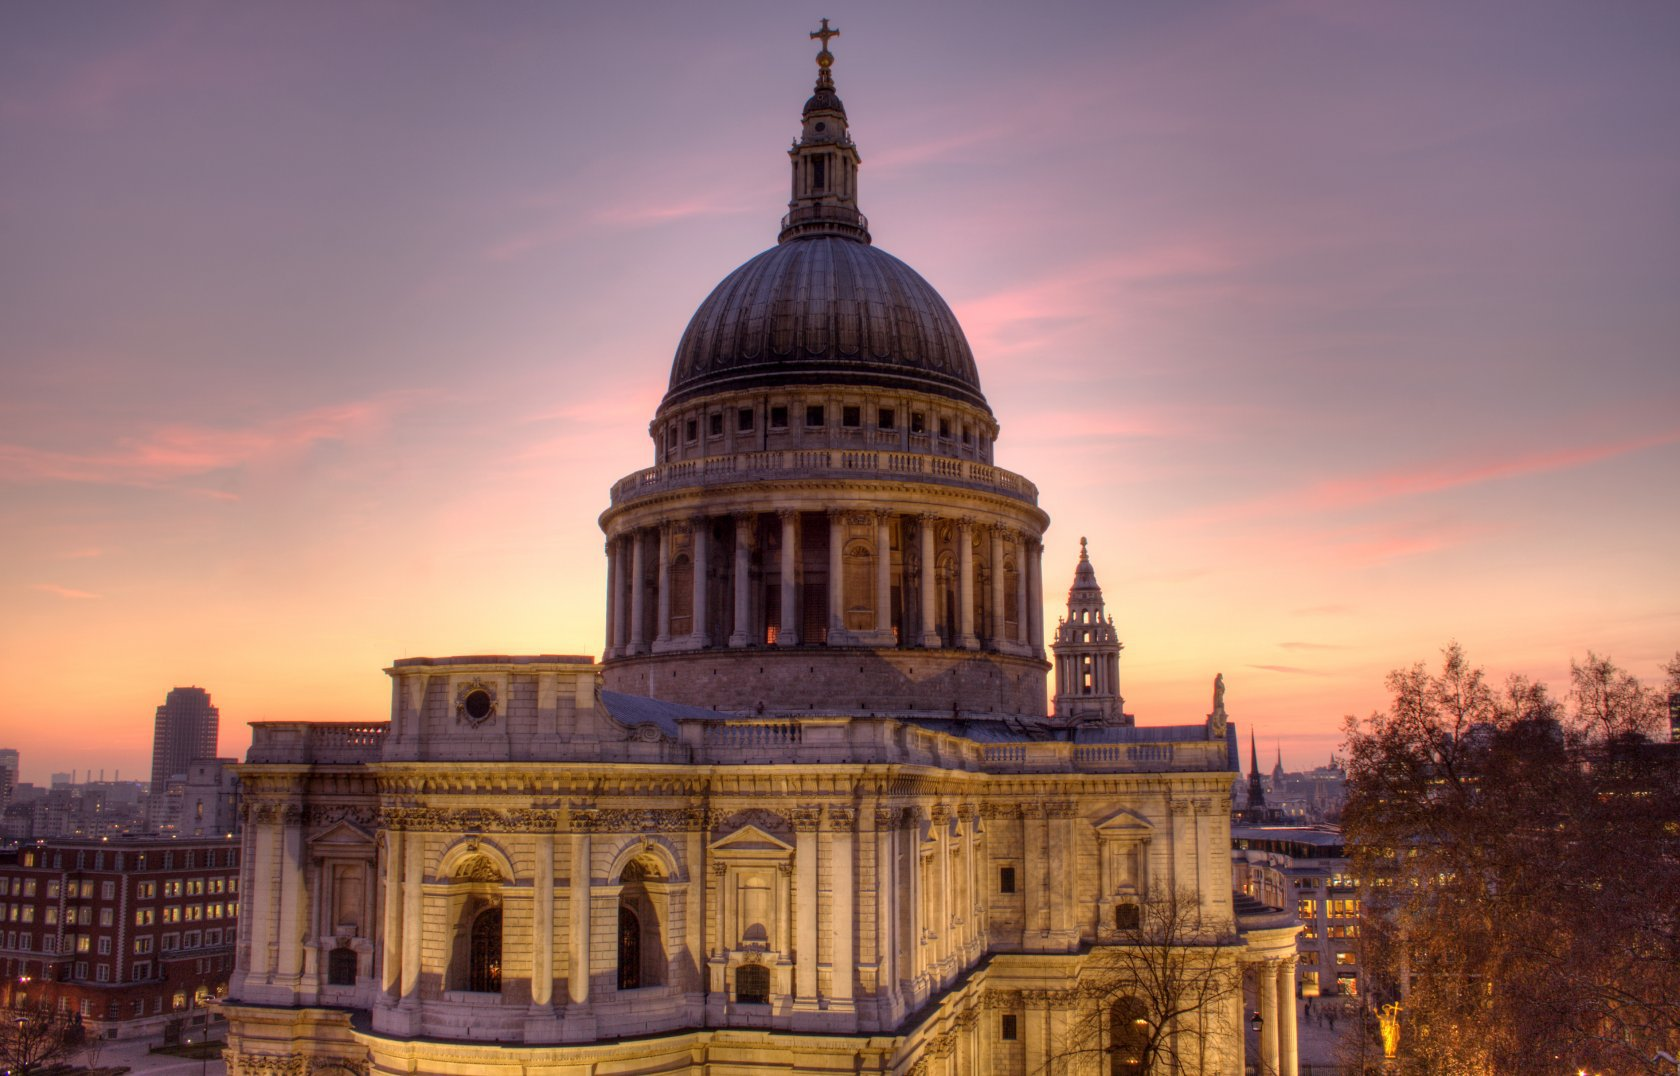 Pictures Of Saint Paul's Cathedral